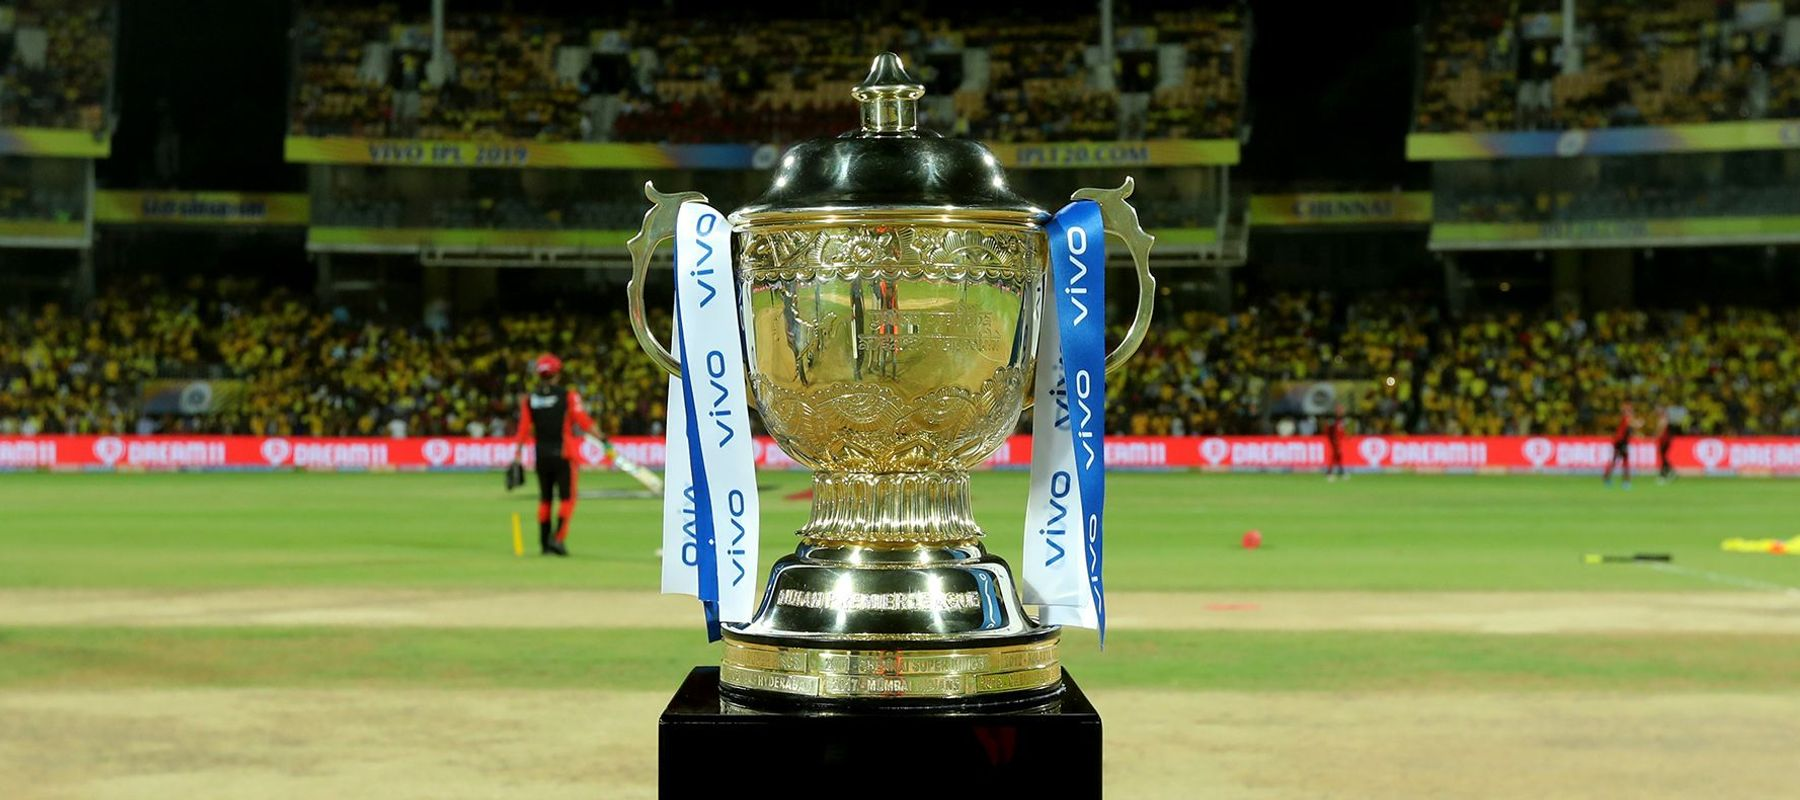 IPL 2020 confirmed! Matches from Sep. 19, Chinese sponsors retained